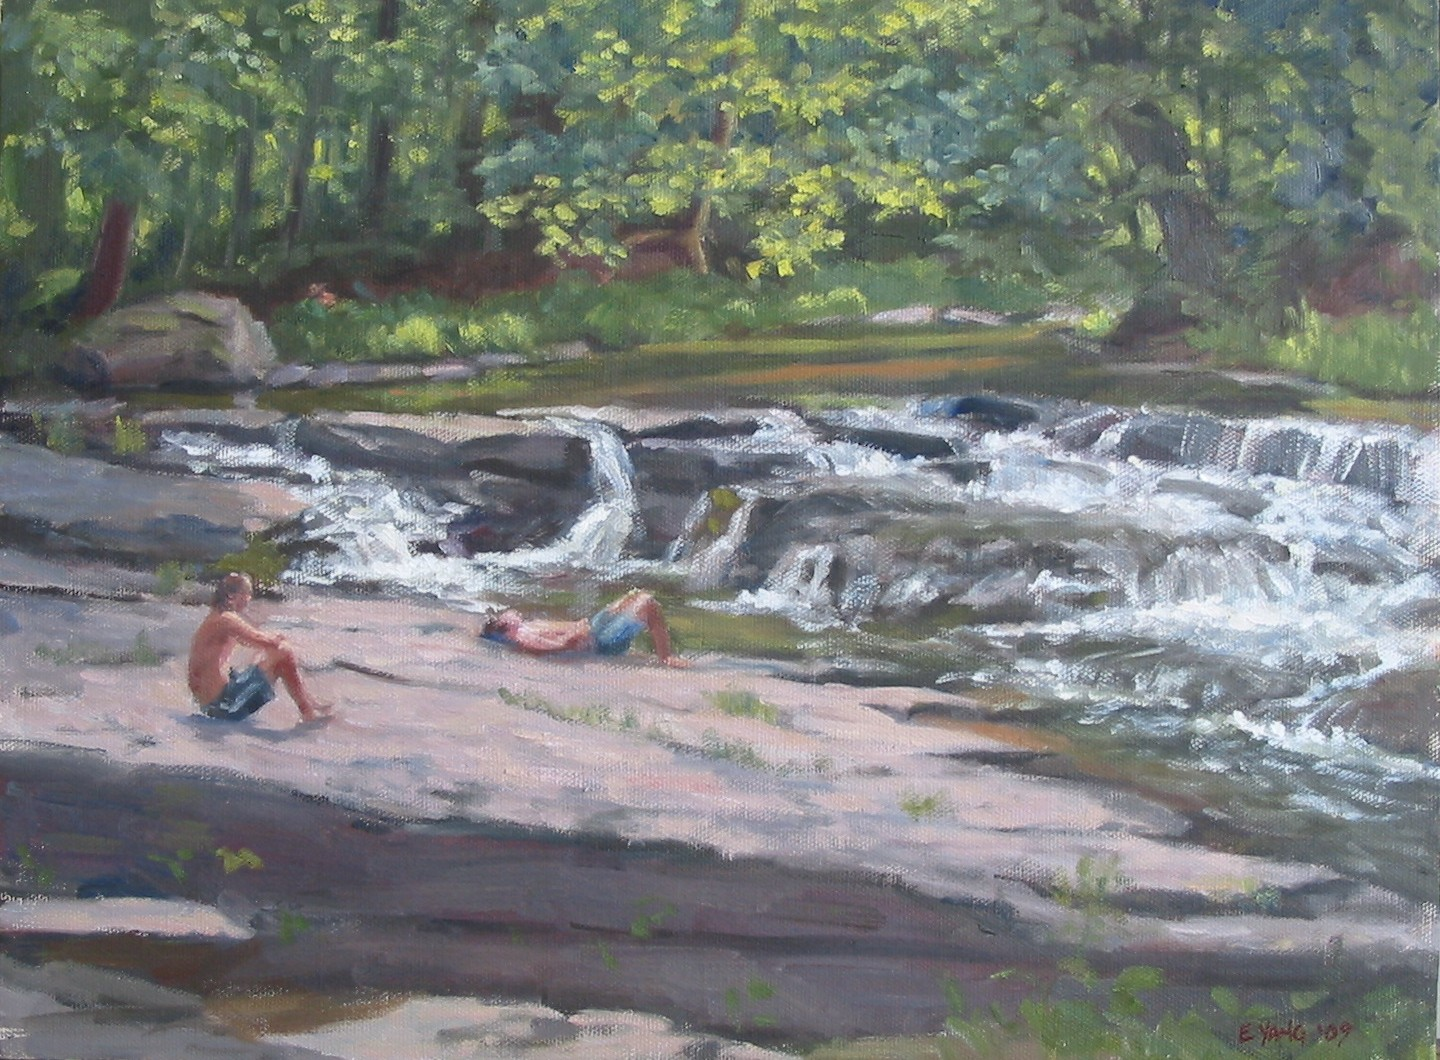 Drying Off By Waterfalls, oil on canvas, 12 x 16 inches